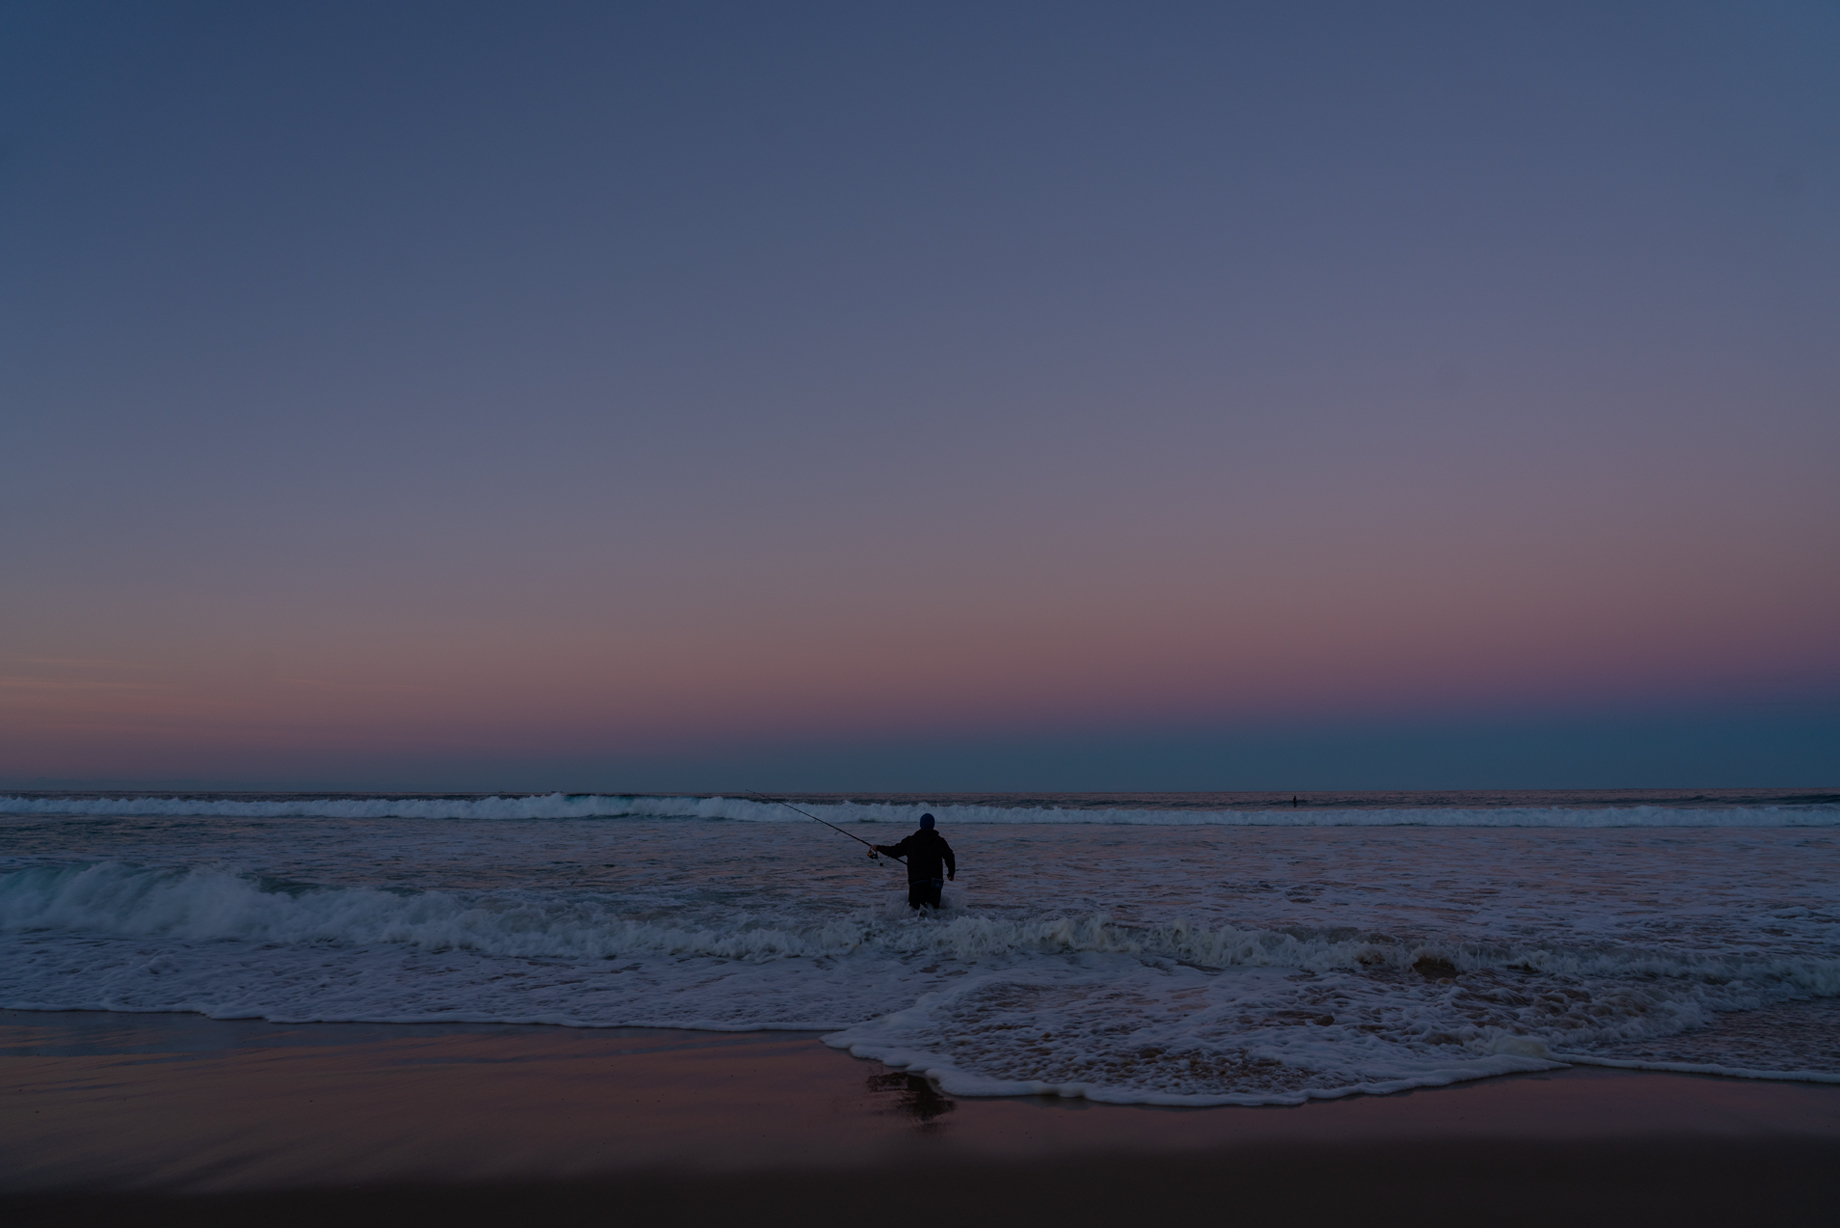 broadbeach_2020_web